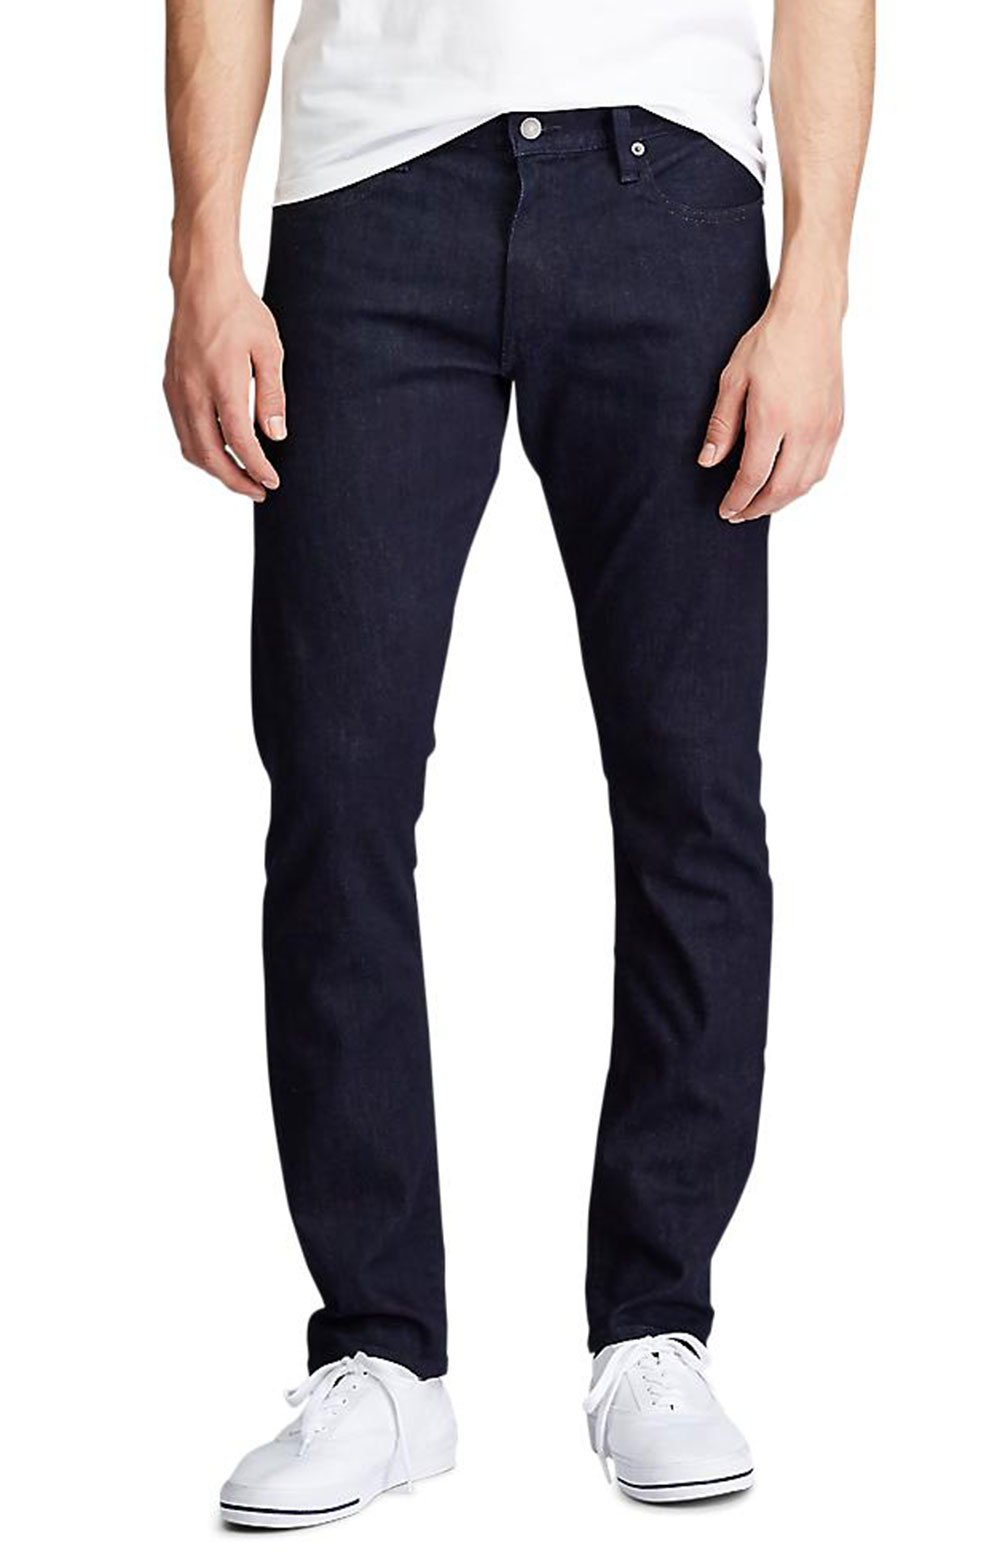 Varick Slim Straight Jeans - Miller Stretch BSR